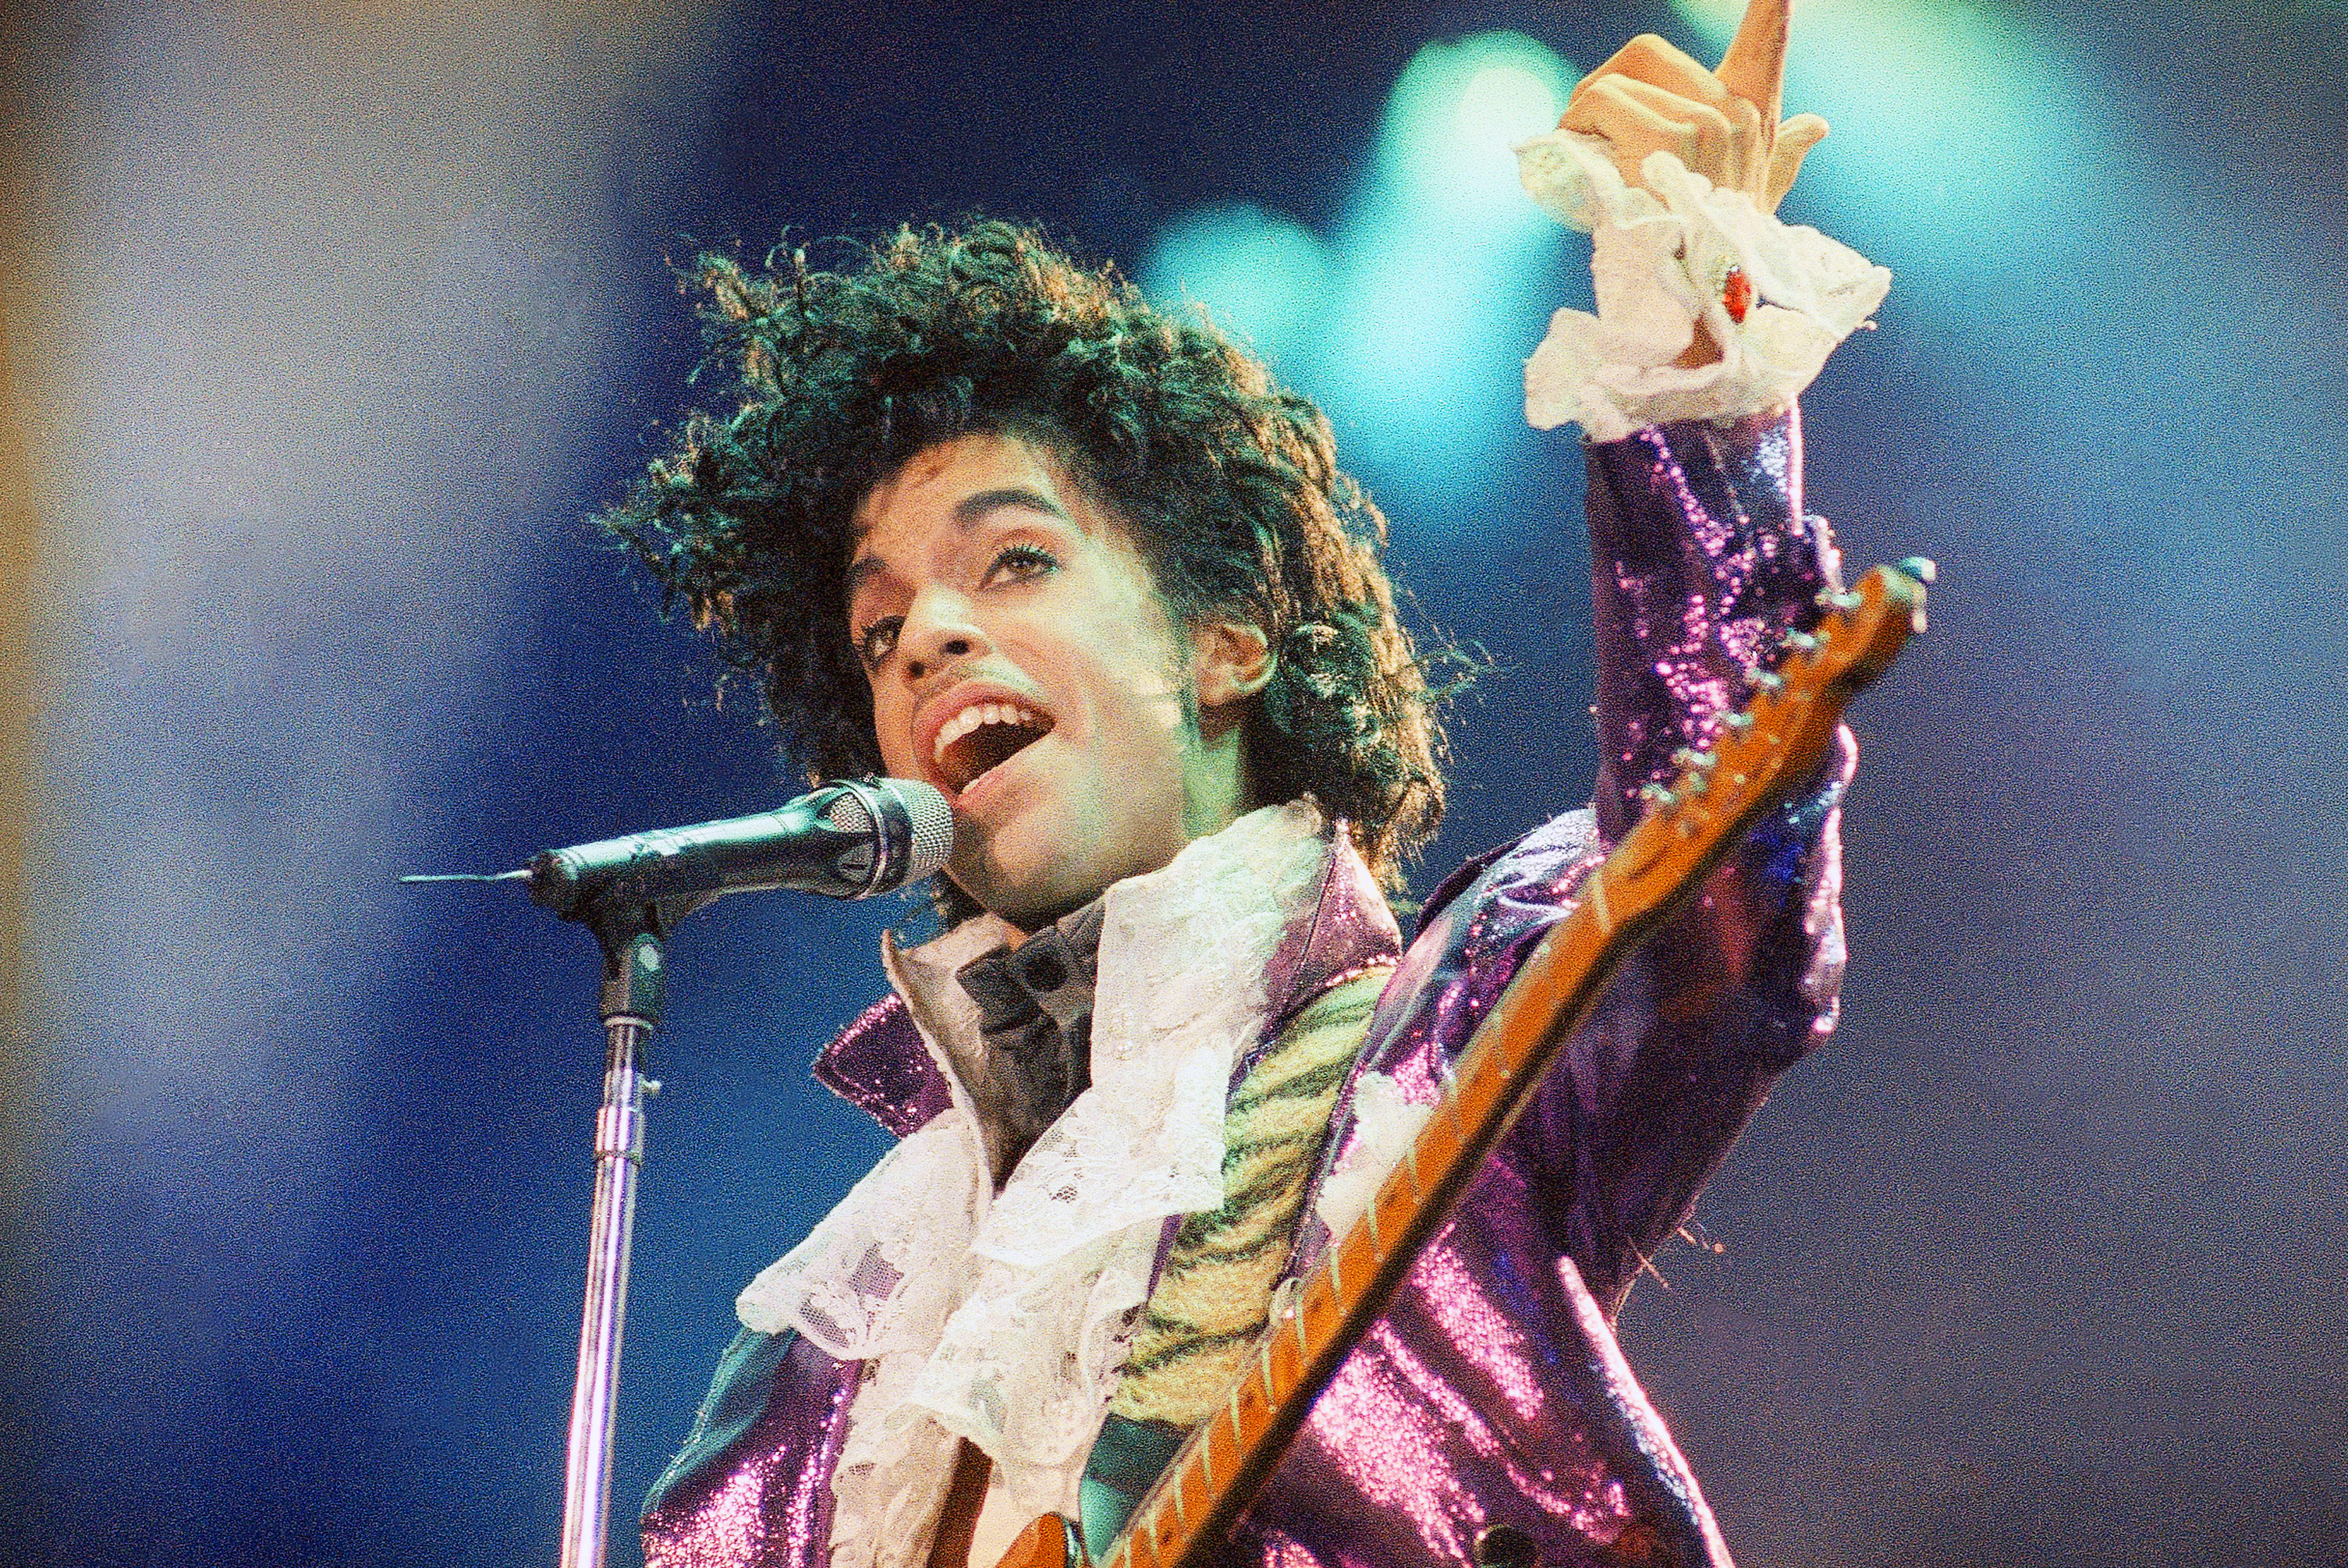 State Fair Will Host 'Unite in Purple' Night to Honor Prince